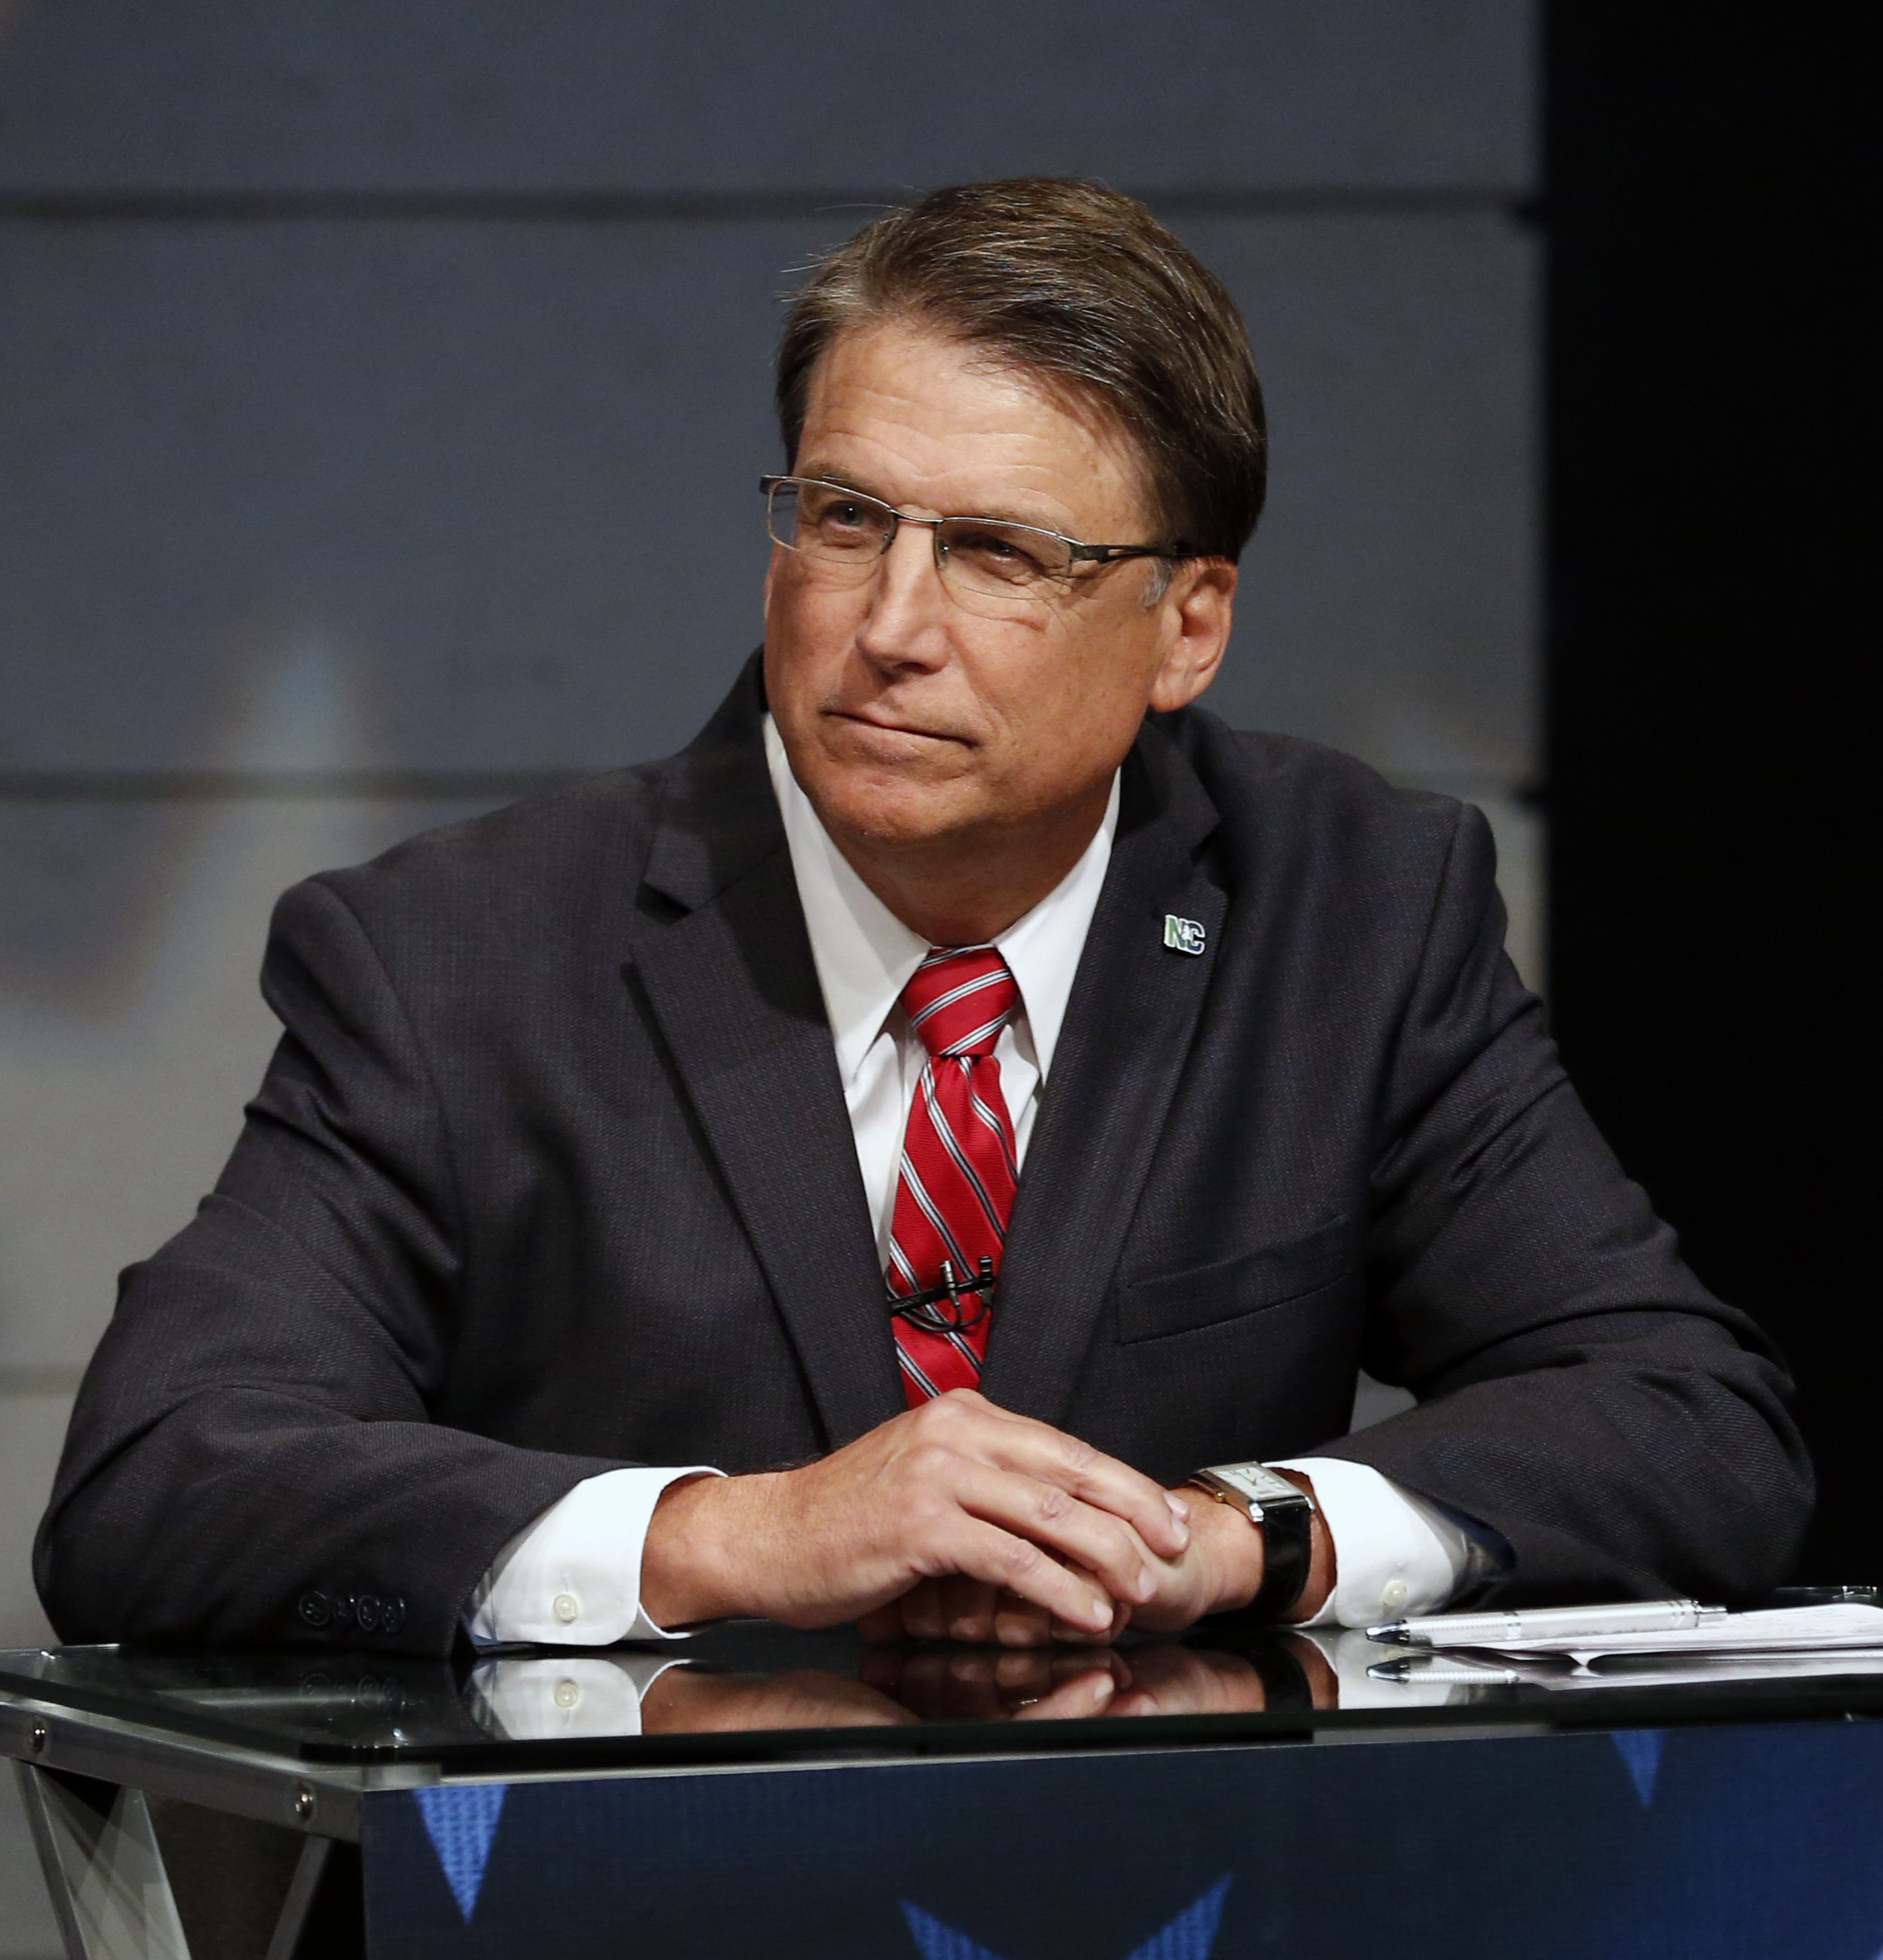 Next for North Carolina Gov. McCrory, who lost re-election bid: A meeting with Trump